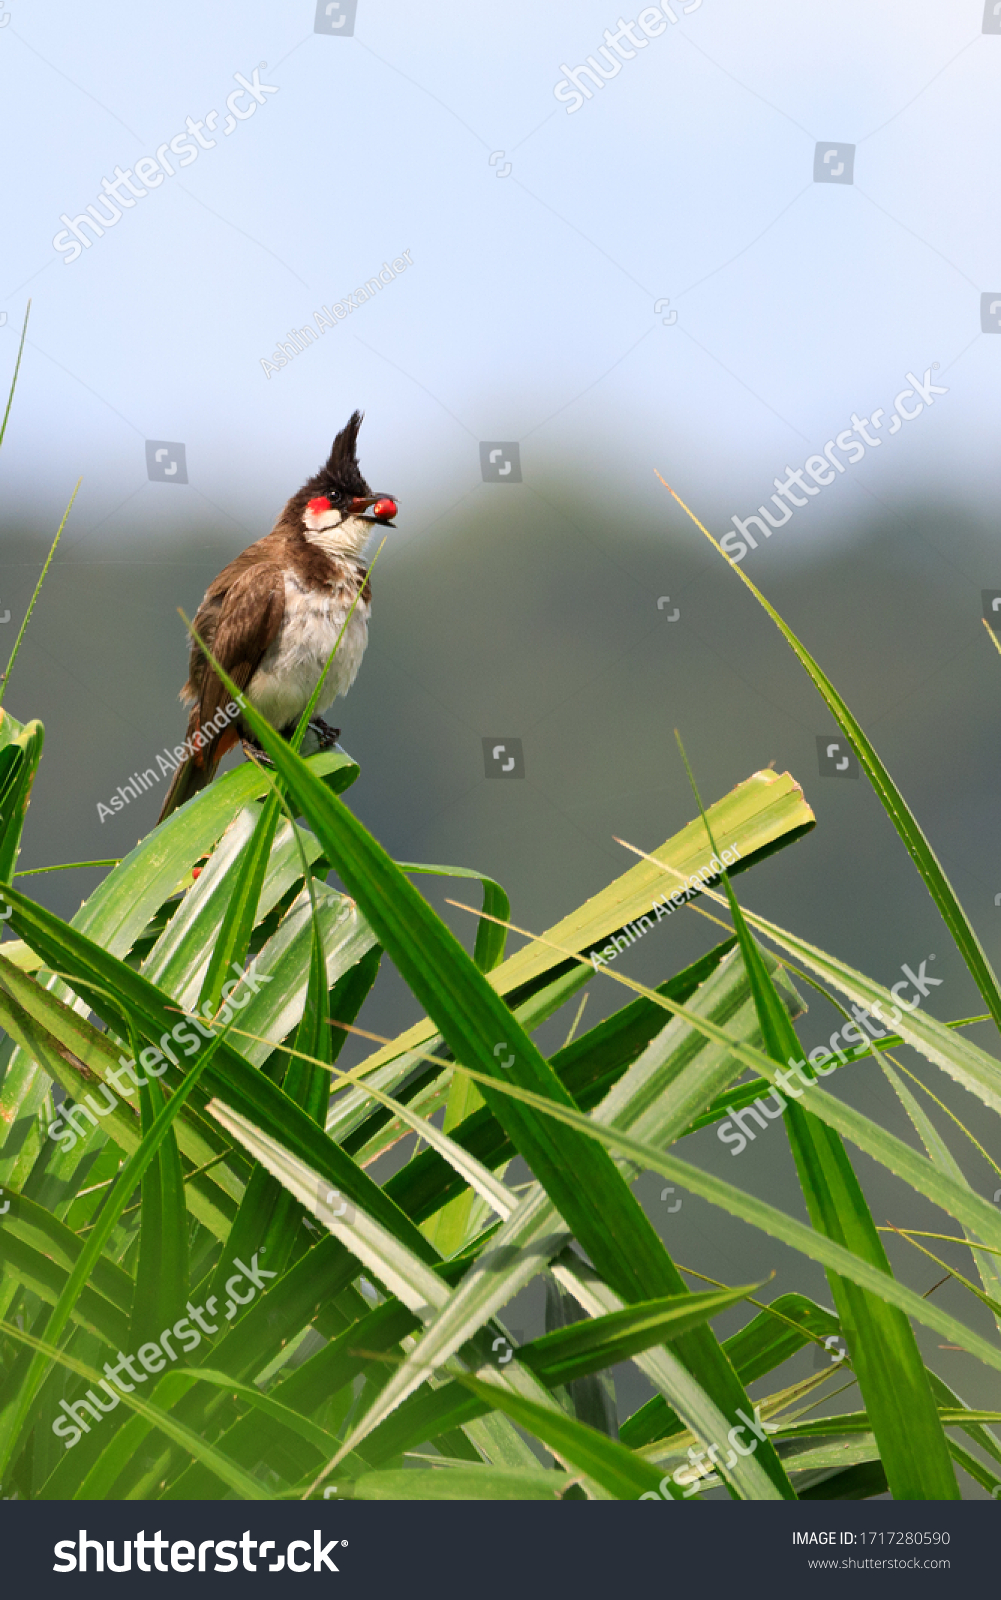 Stock Photos of red whiskered bulbul